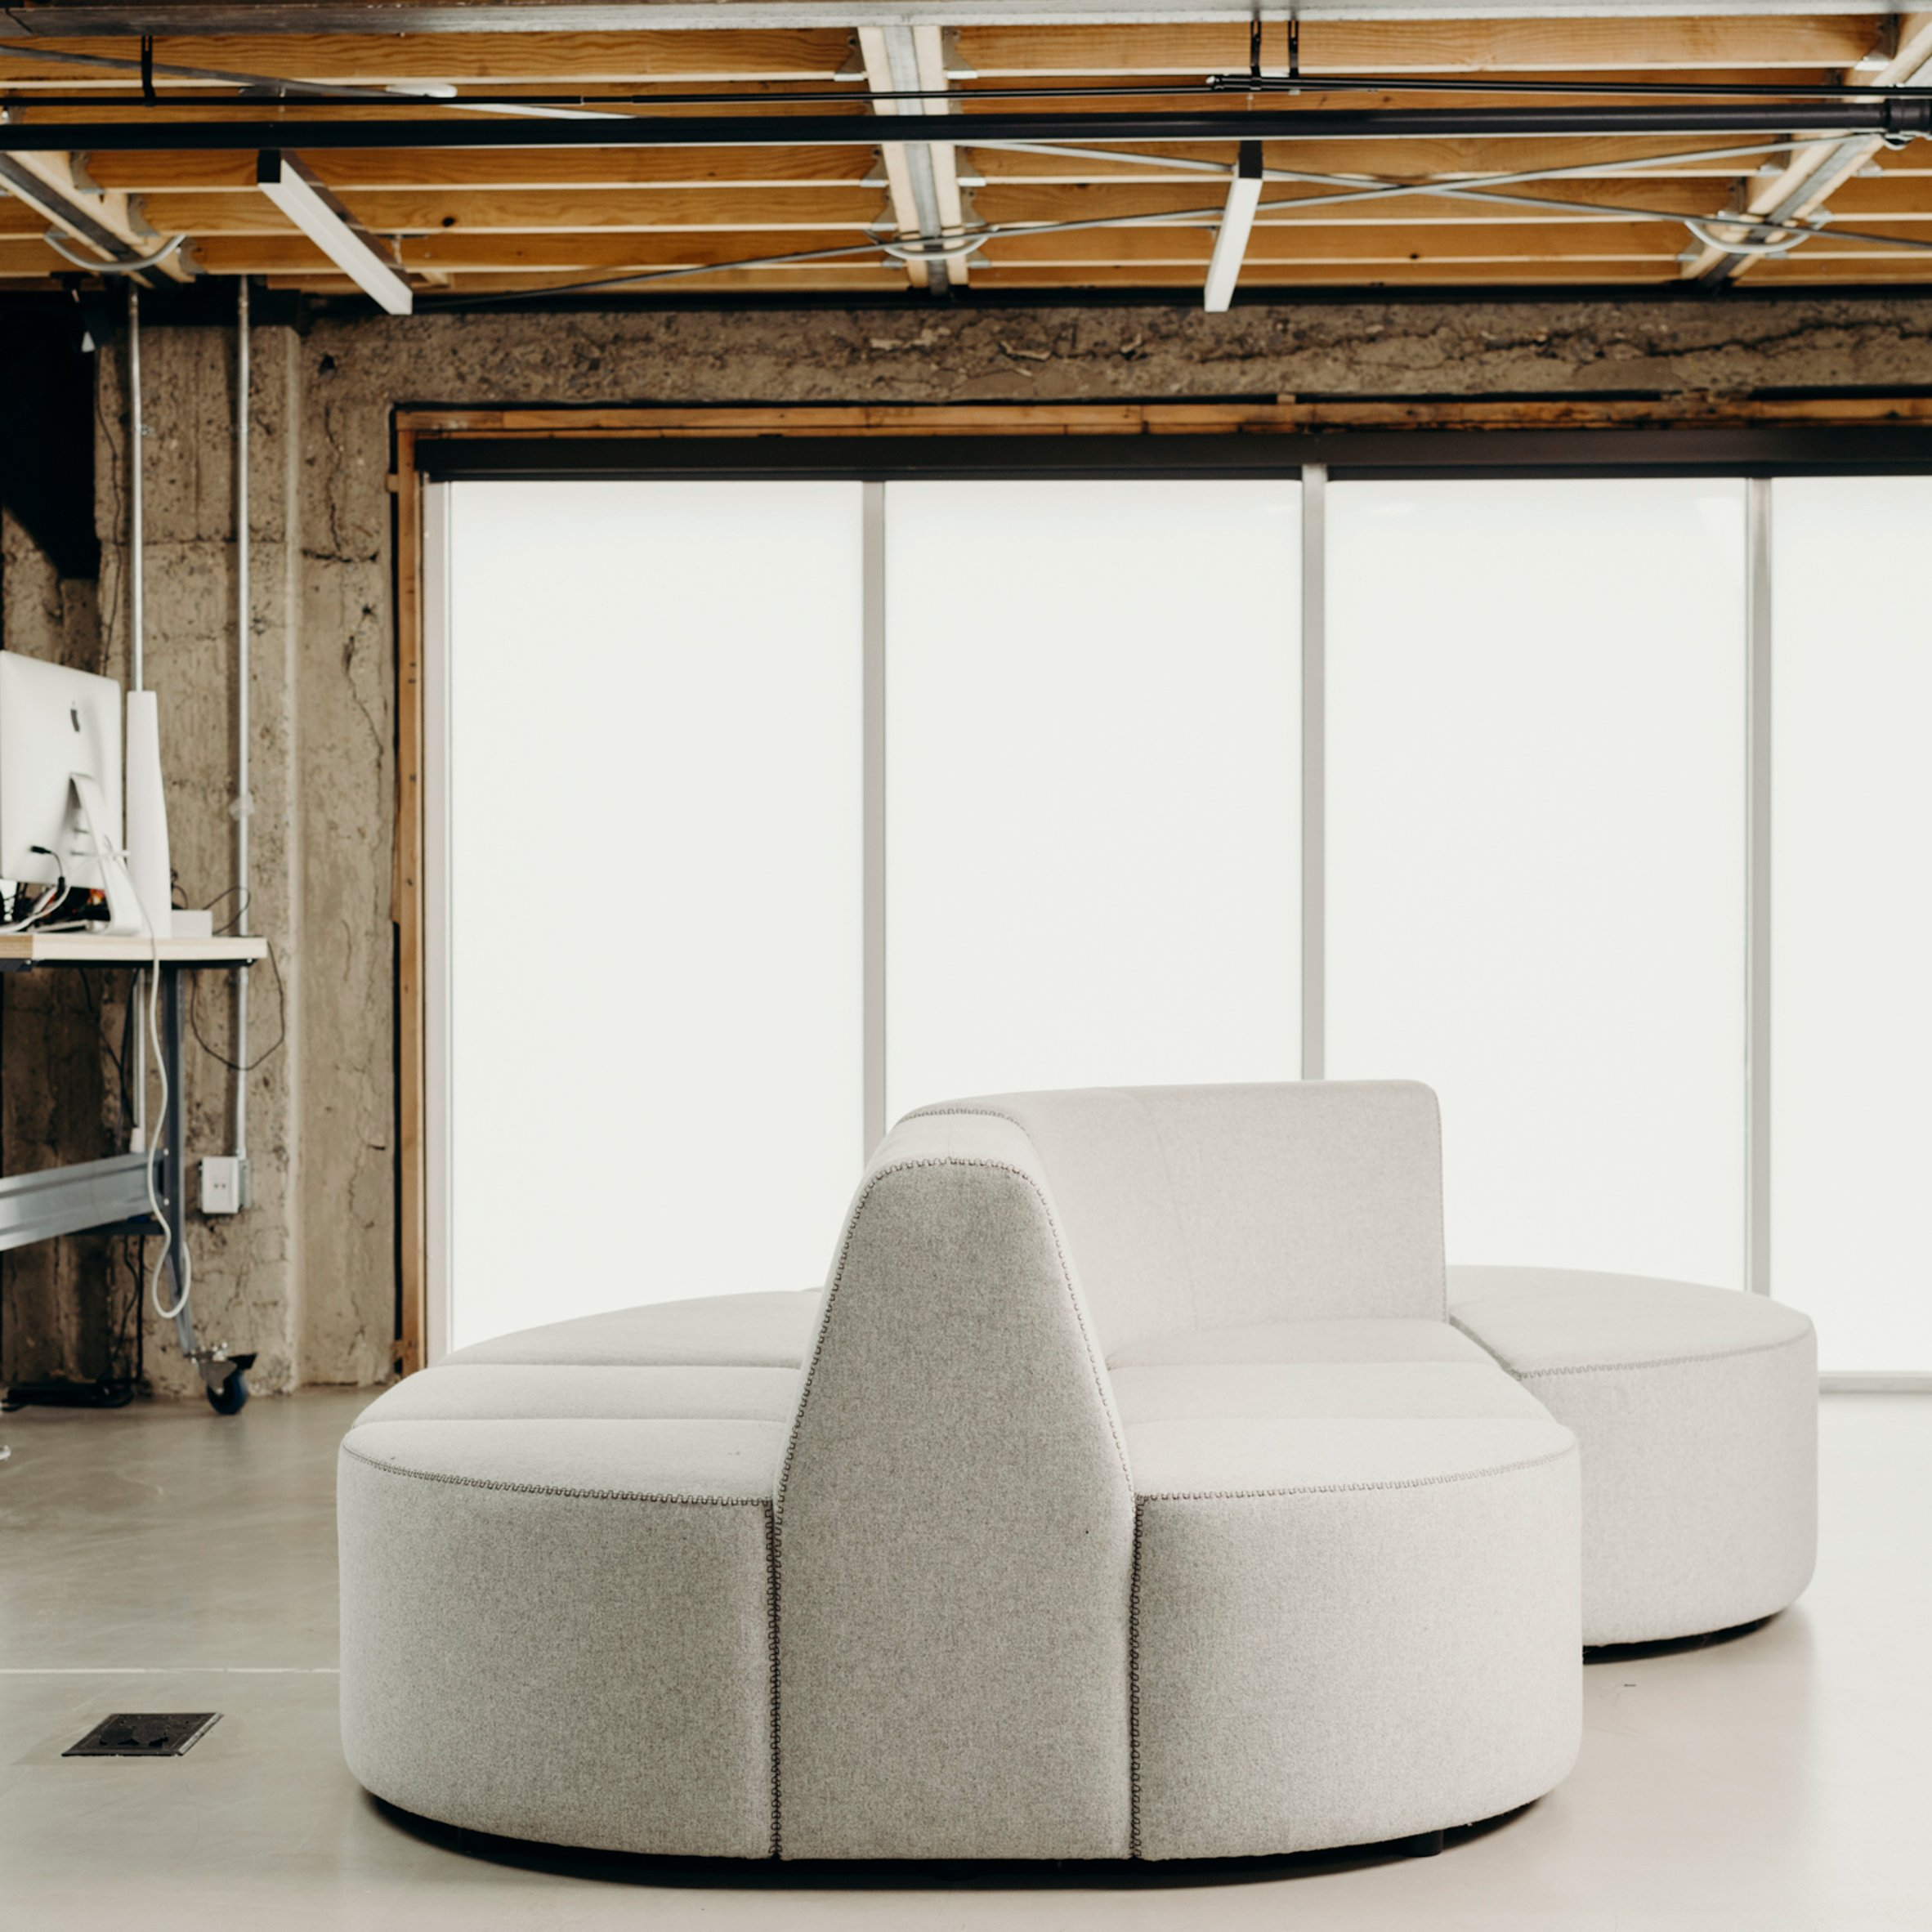 Office furniture design Dezeen